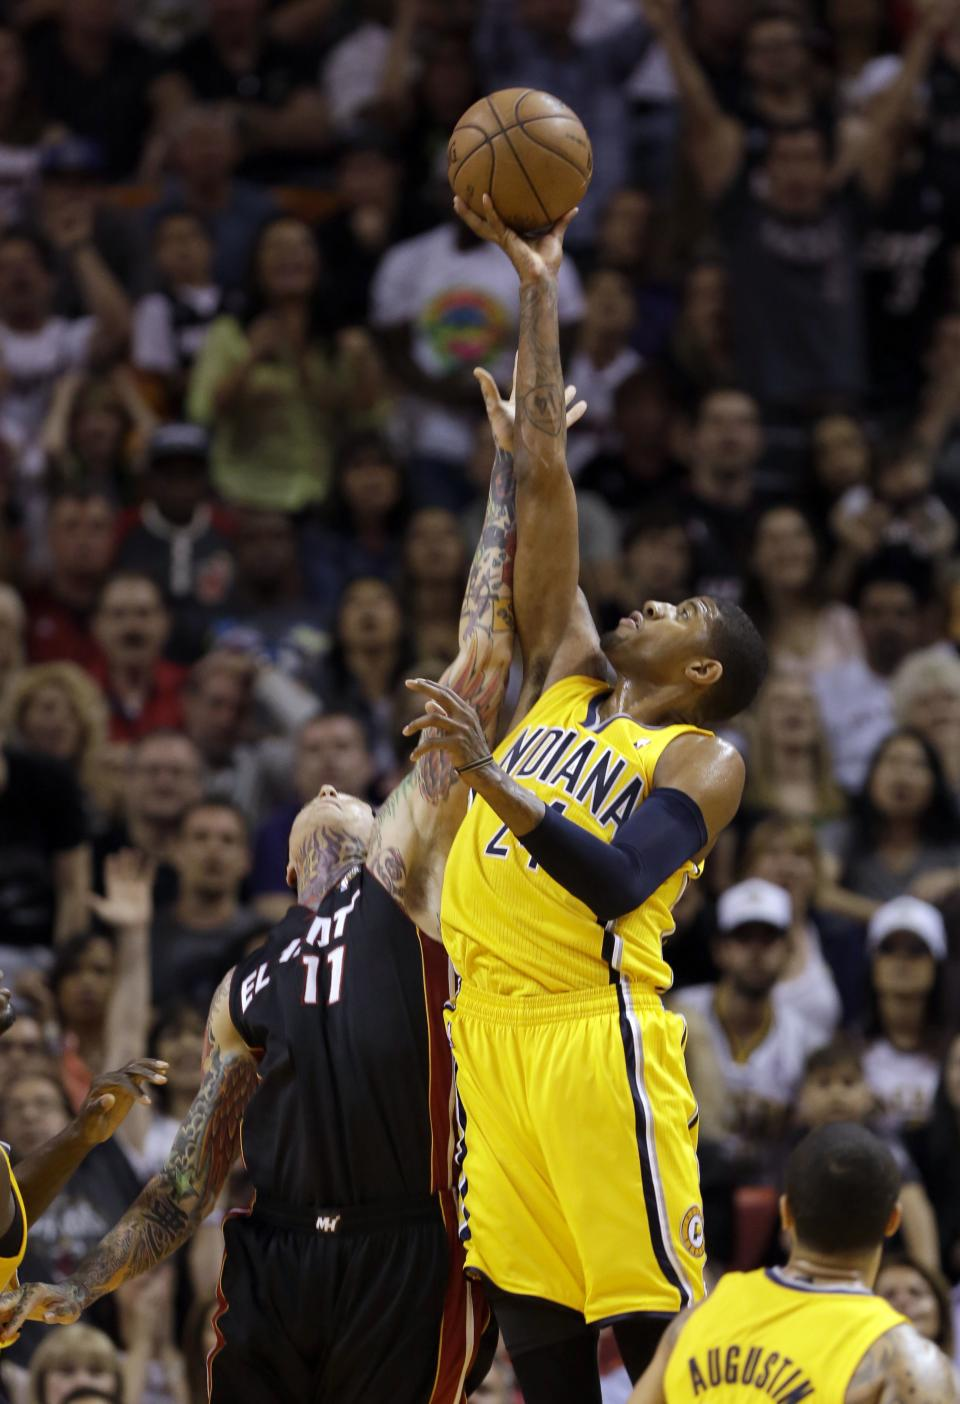 Indiana Pacers' Paul George (24) recovers a rebound over Miami Heat's Chris Andersen (11) during the first half of an NBA basketball game in Miami, Sunday, March 10, 2013. (AP Photo/Alan Diaz)